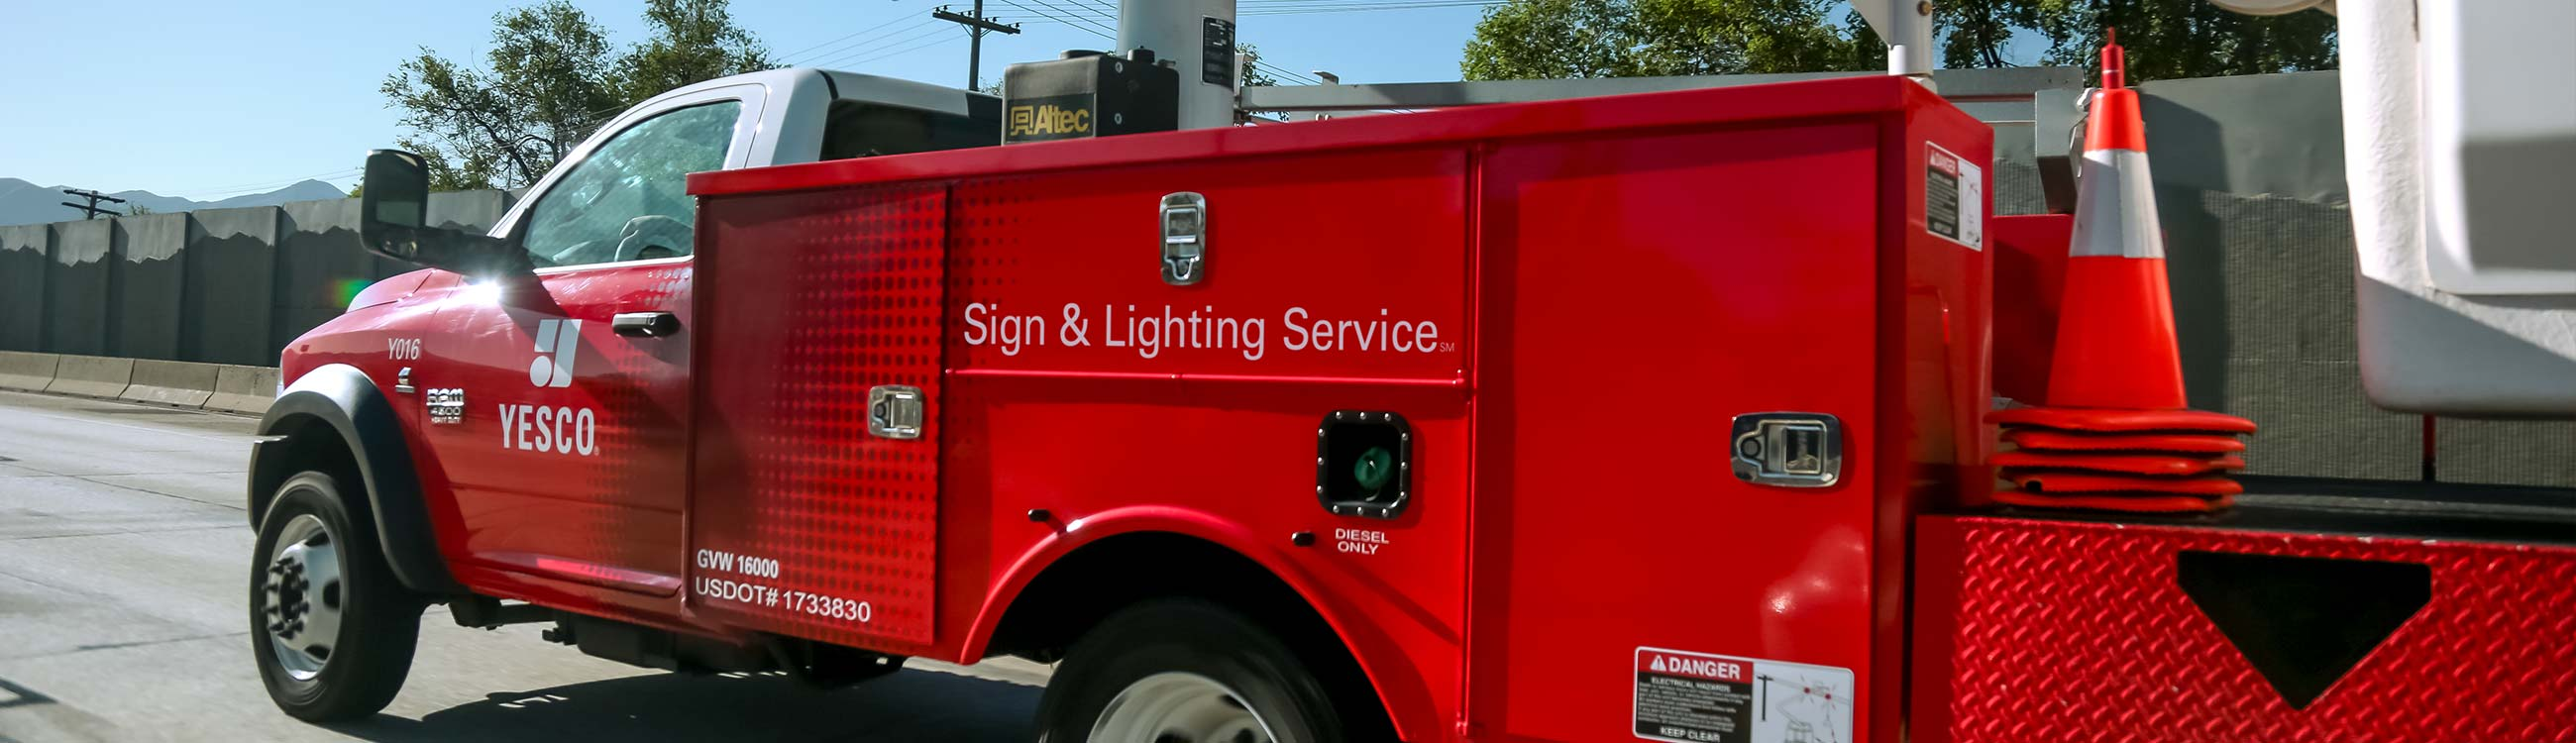 Sign & Lighting Service Dallas North